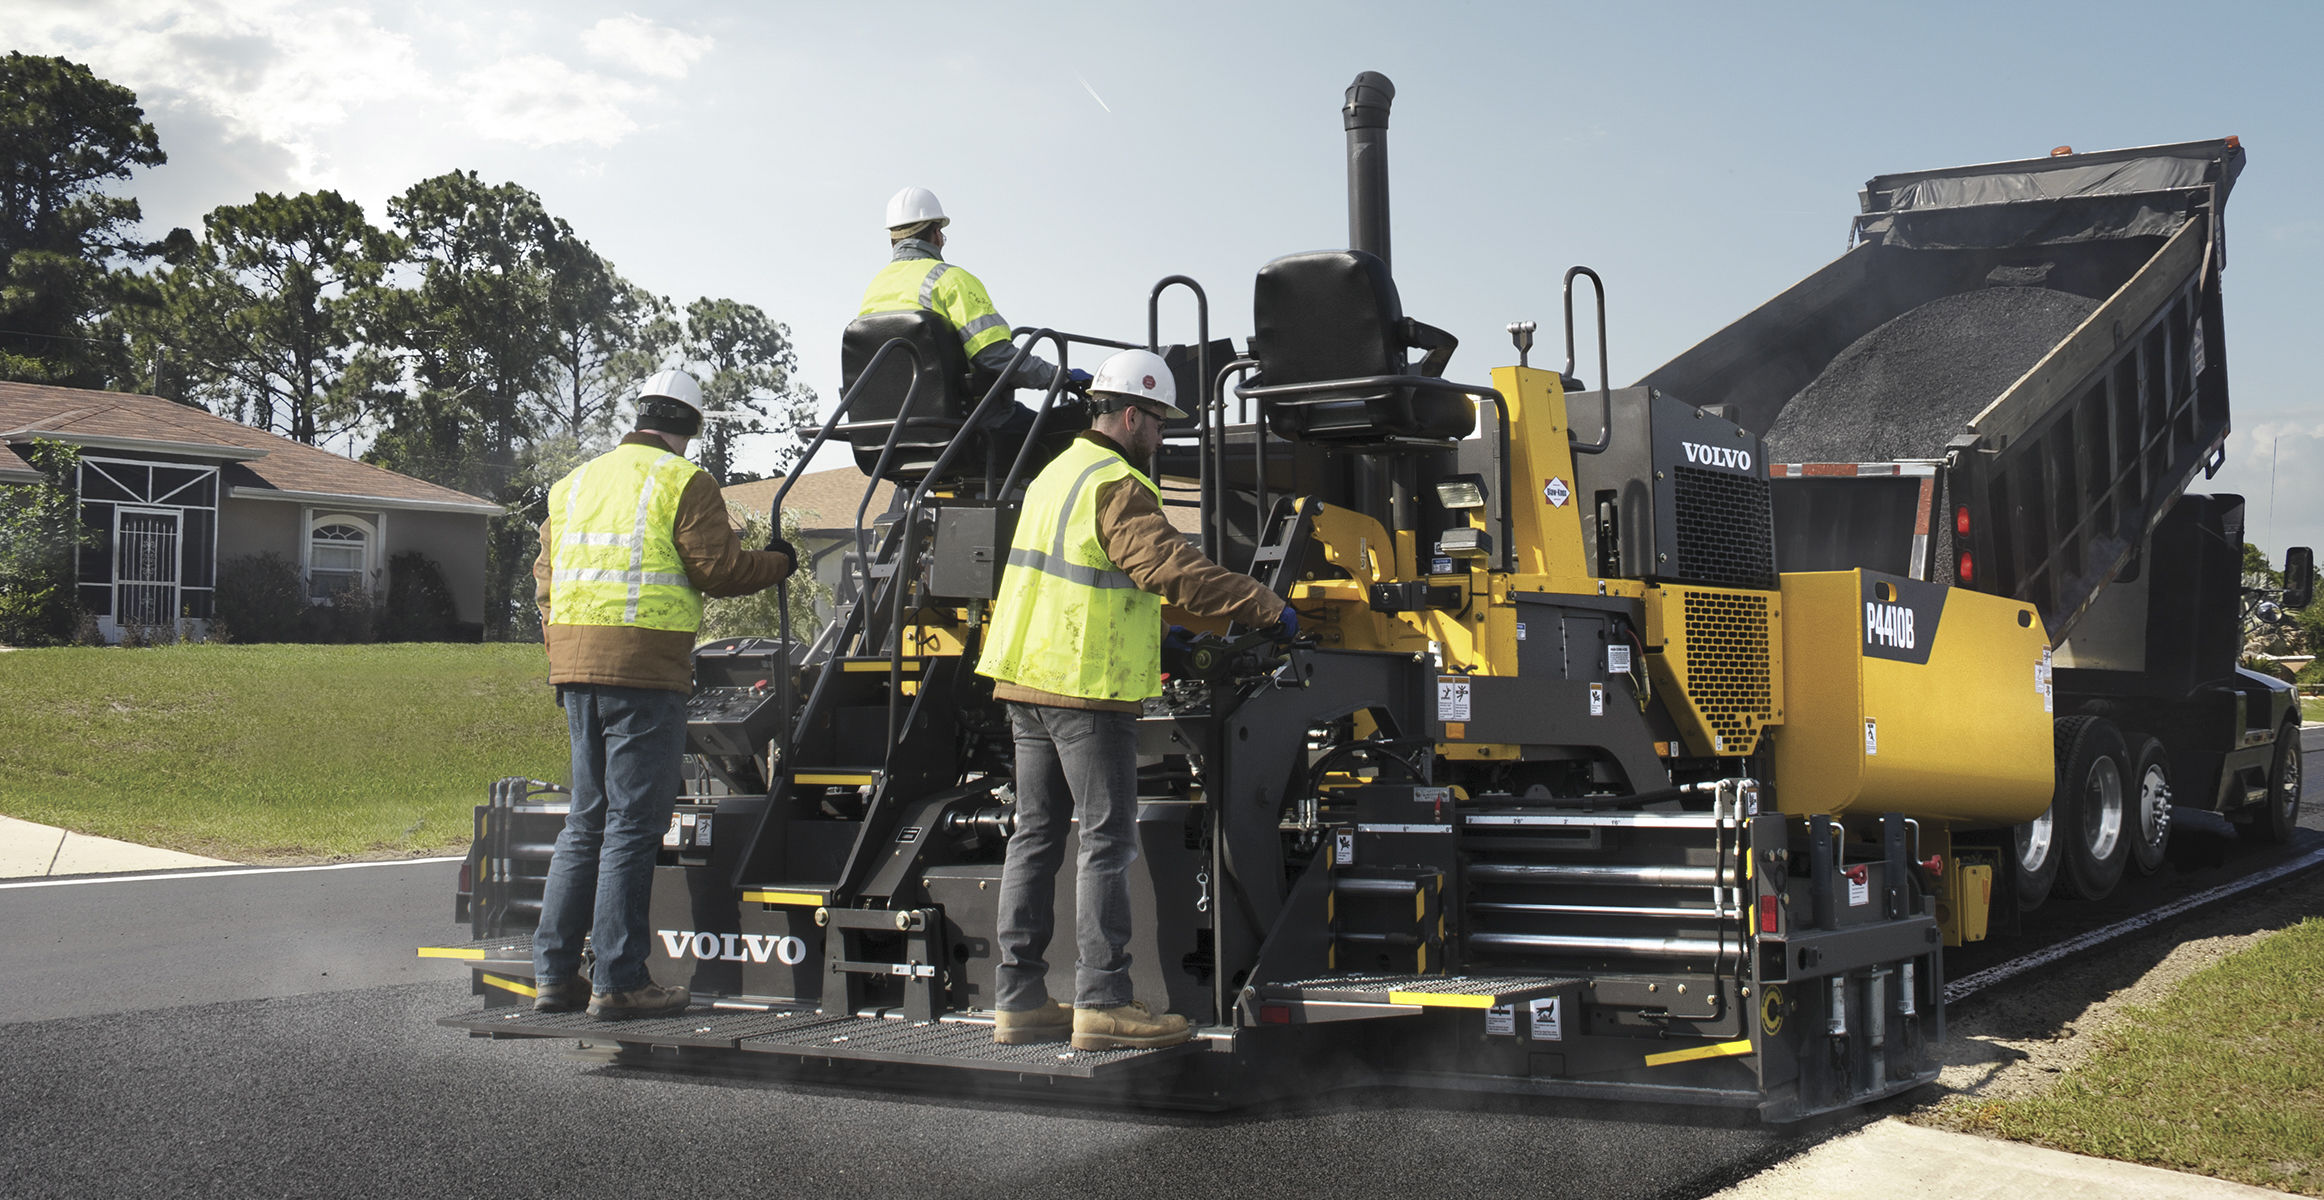 P4410B | Blaw-Knox Tracked Pavers | Overview | Volvo Construction Equipment